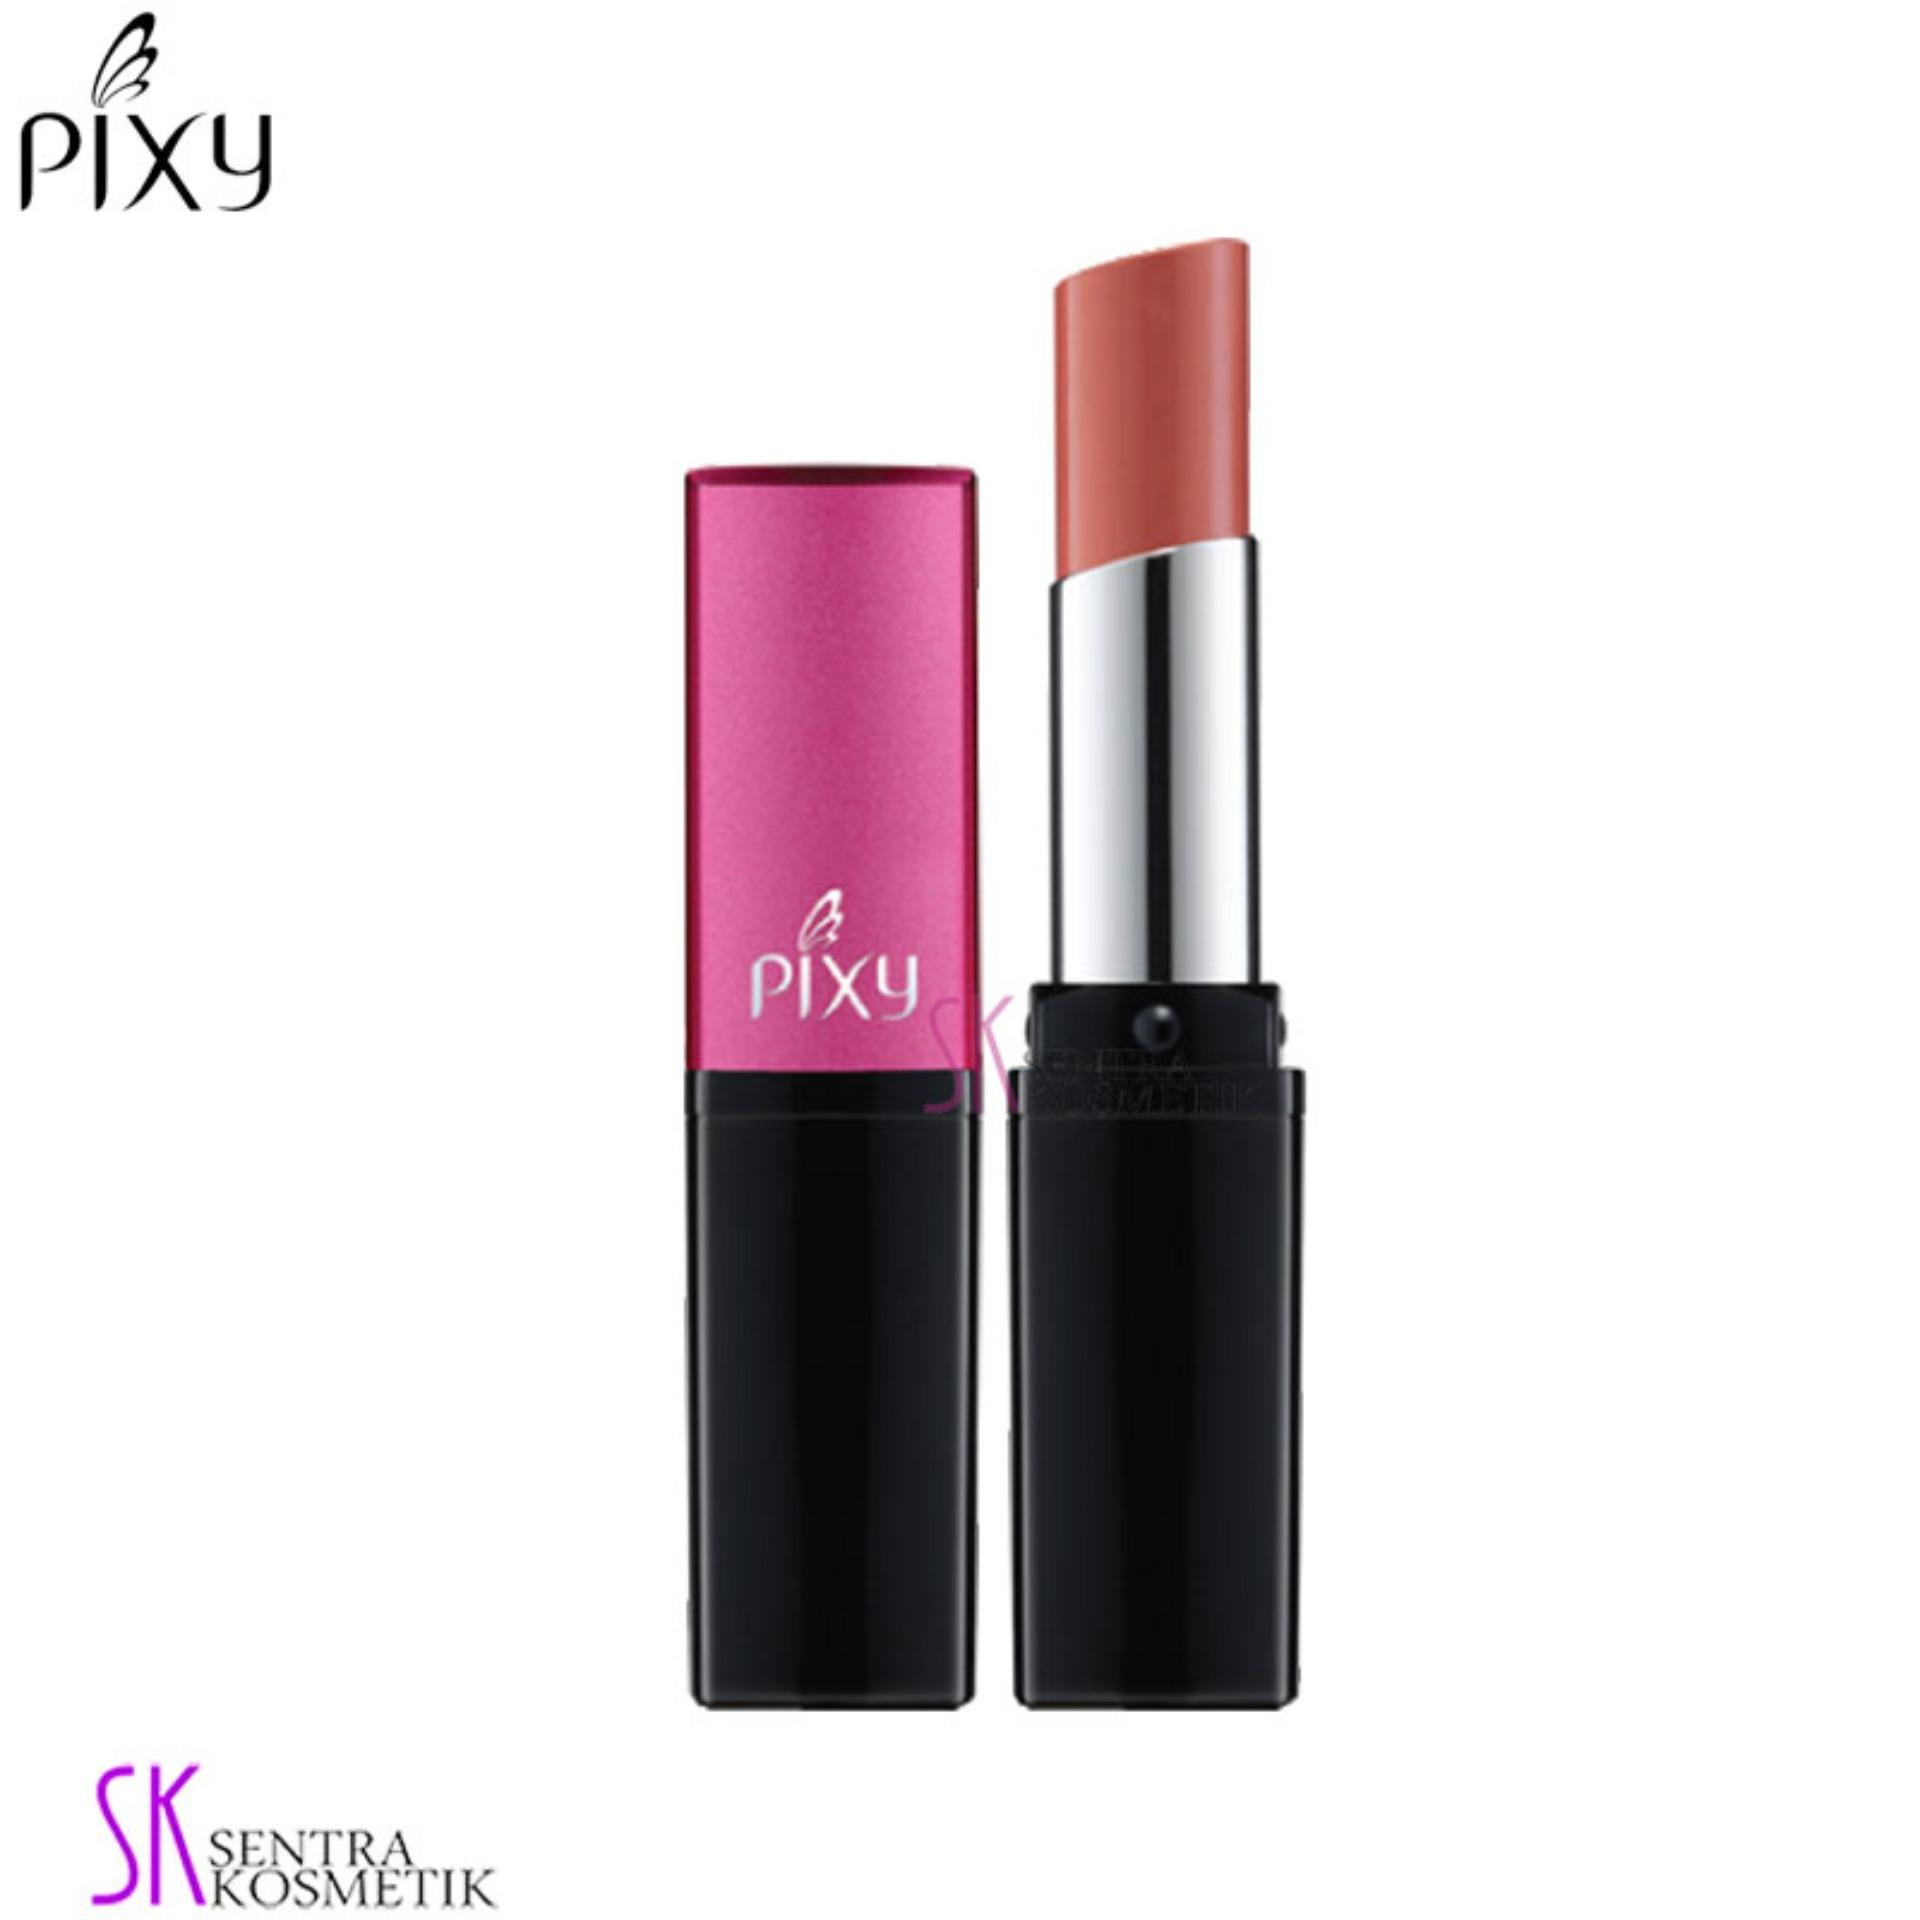 PIXY Matte In Love Lipstick - 409 SOFT NUDE